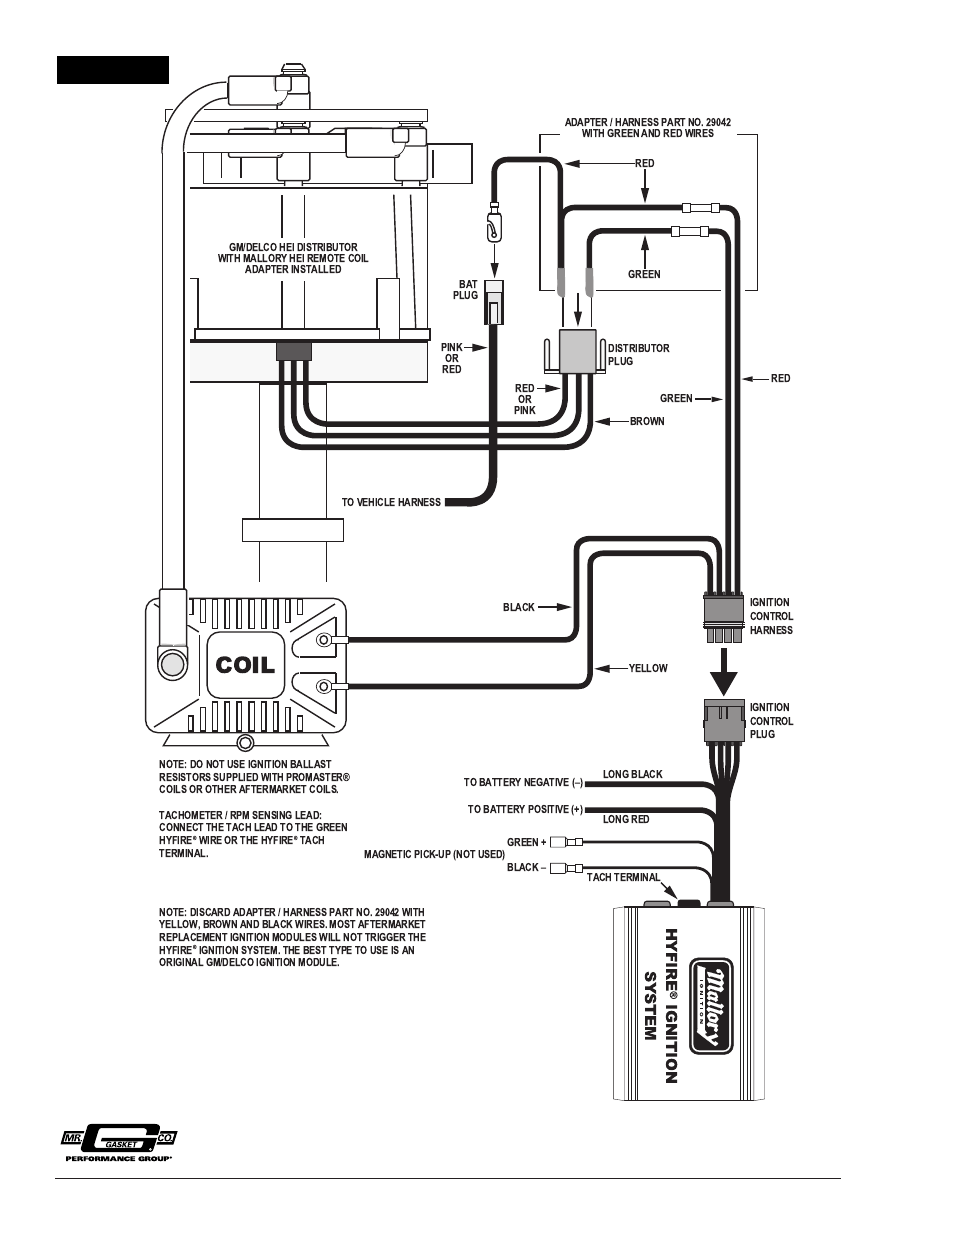 wiring diagram for msd6al to mallory 8360m distributor